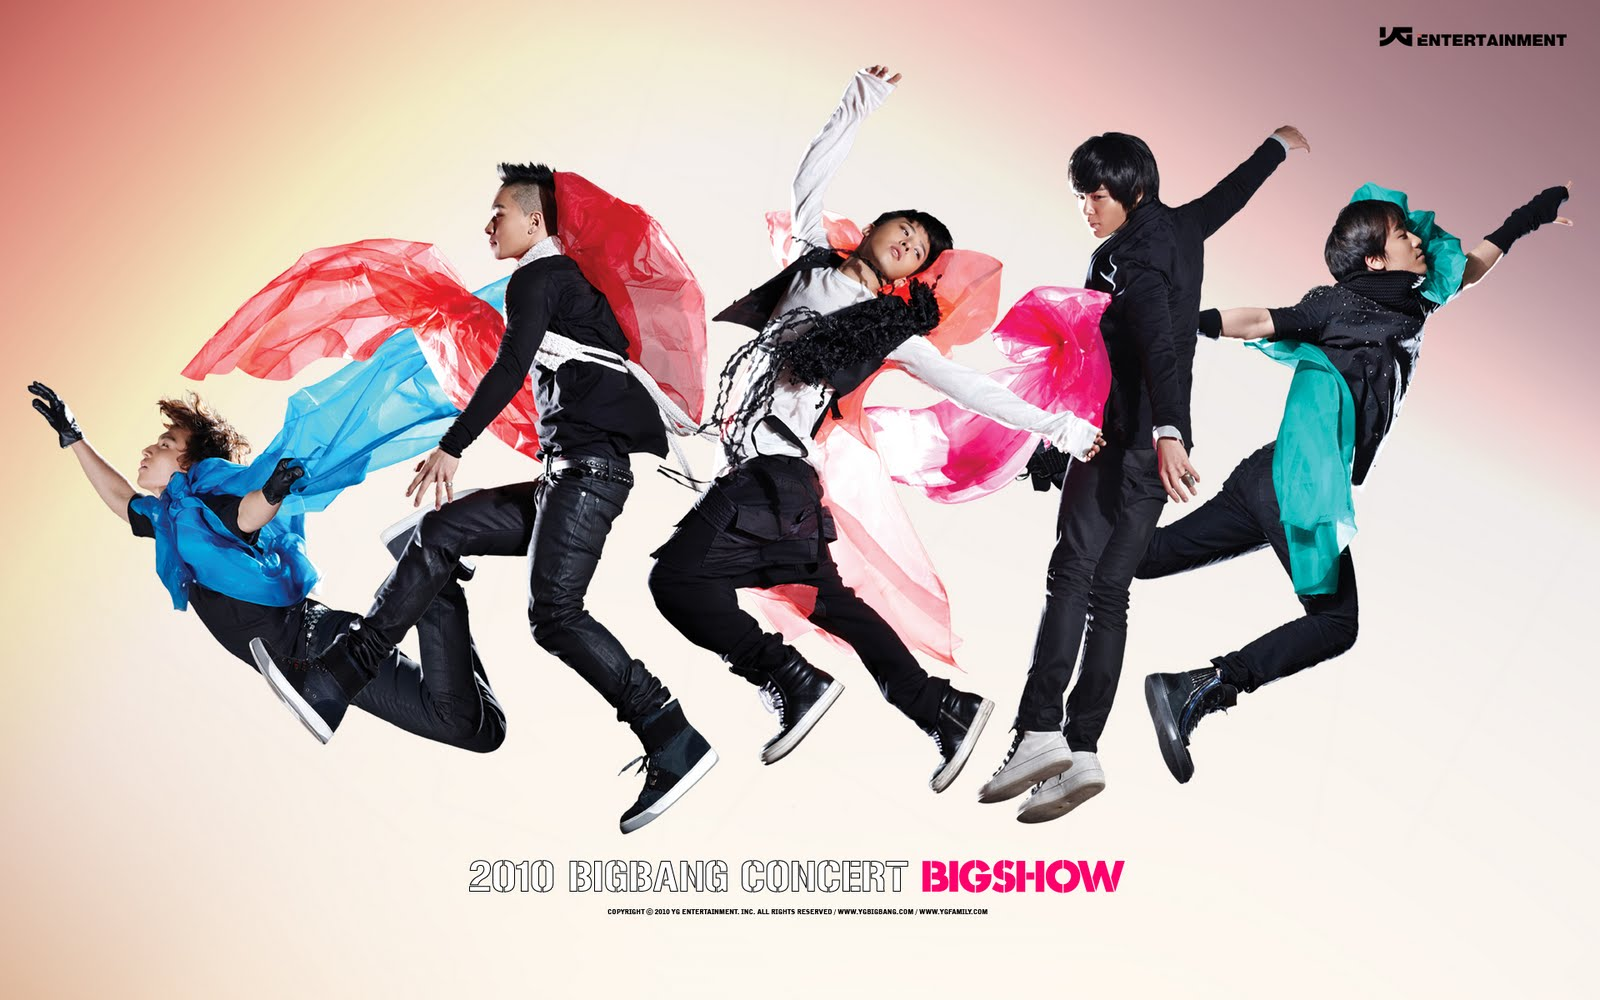 Big Bang wallpaper  kpop 4ever Wallpaper 32174930  Fanpop